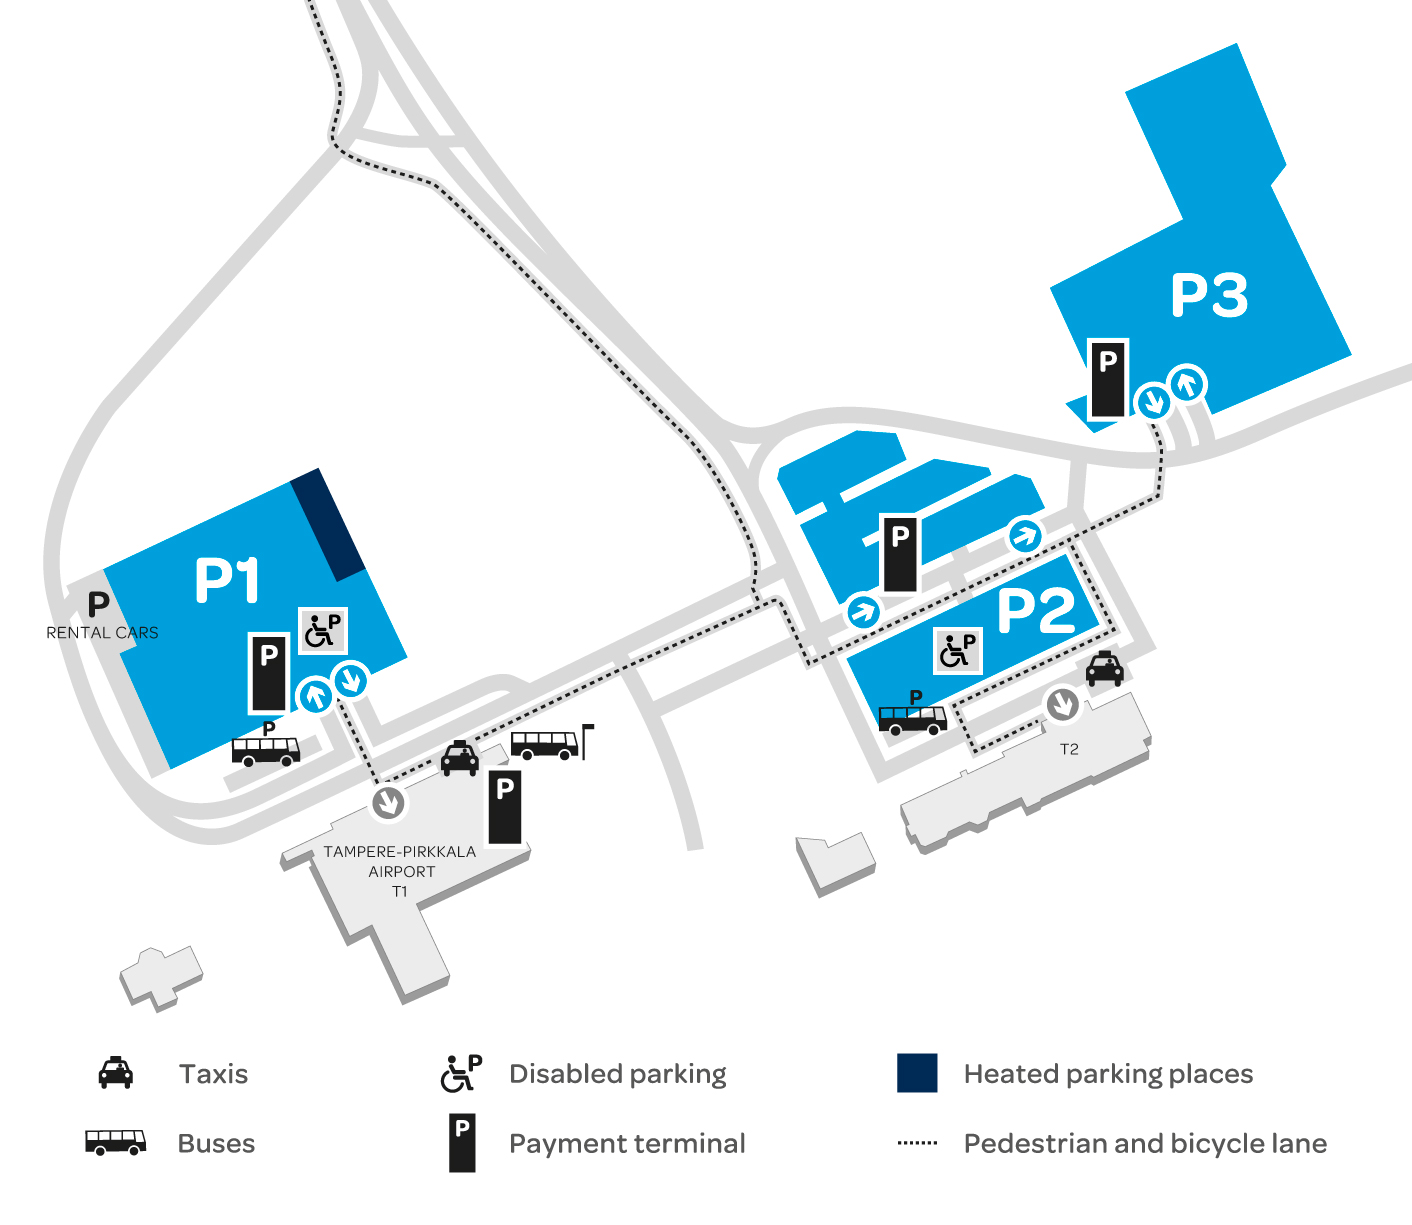 Parking At Tampere Pirkkala Airport Finavia Electric Car Charger Schematic Heated Spaces And Charging